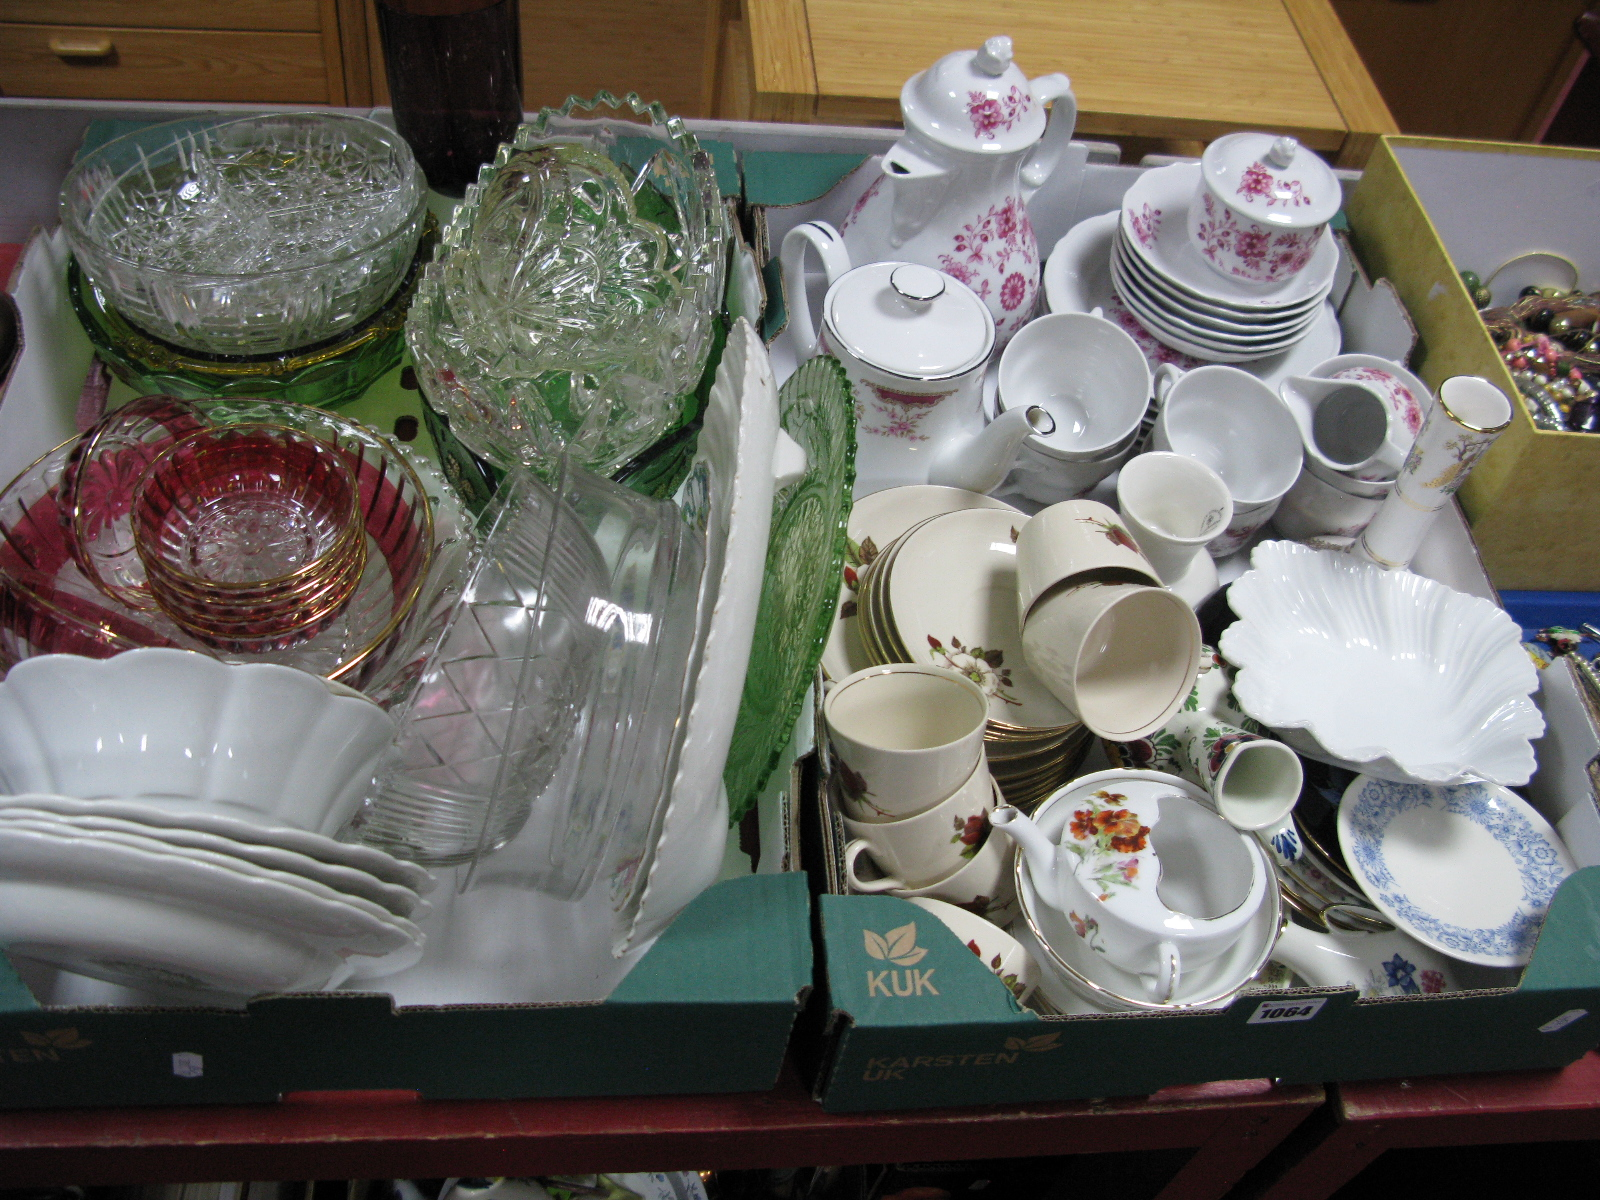 Lot 1064 - Tulowics Tea Ware, German coffee service, glassware etc:- One Tray